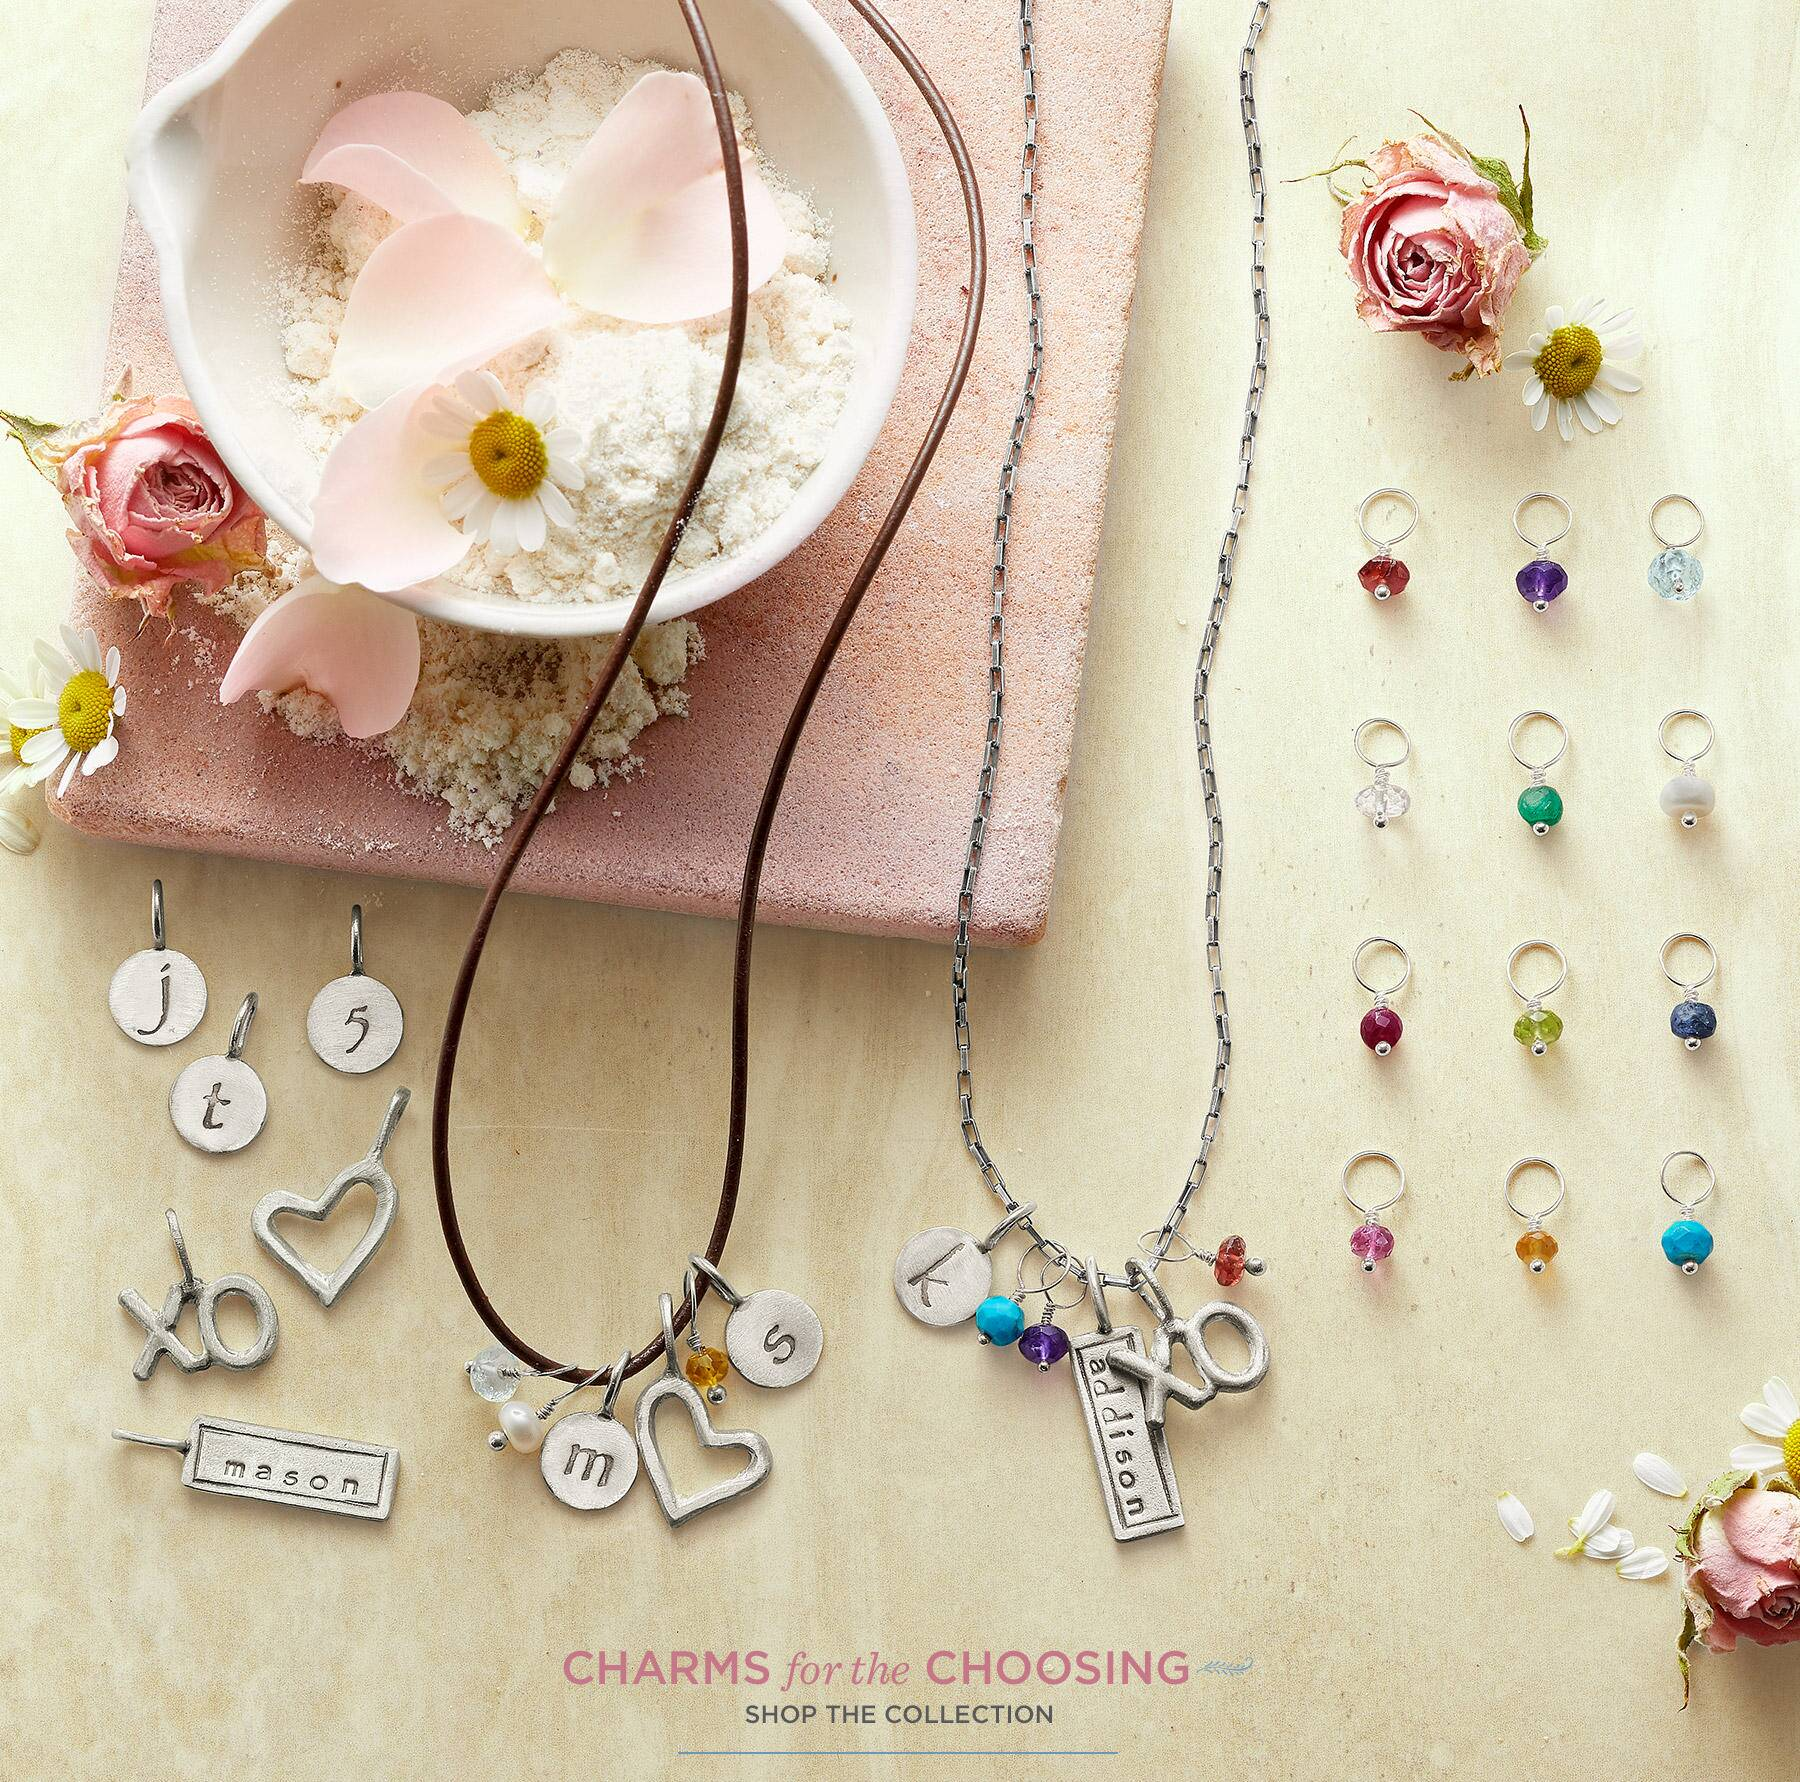 Charms for the Choosing